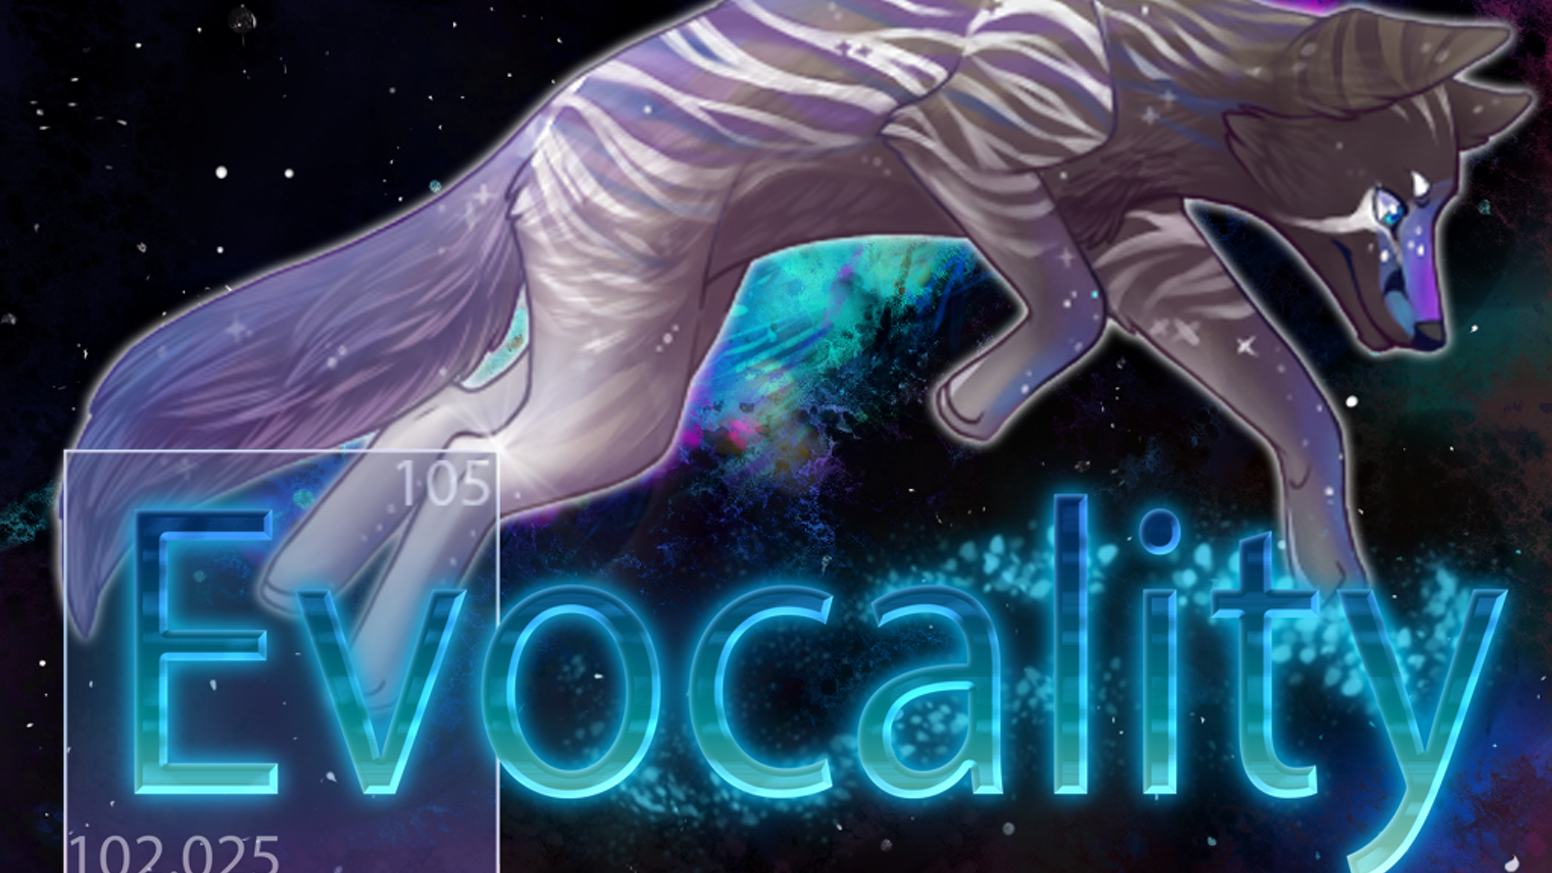 Set in a turbulent dystopia, Evocality is an evocative browser-based game which reveals a world of compelling scientific innovation.